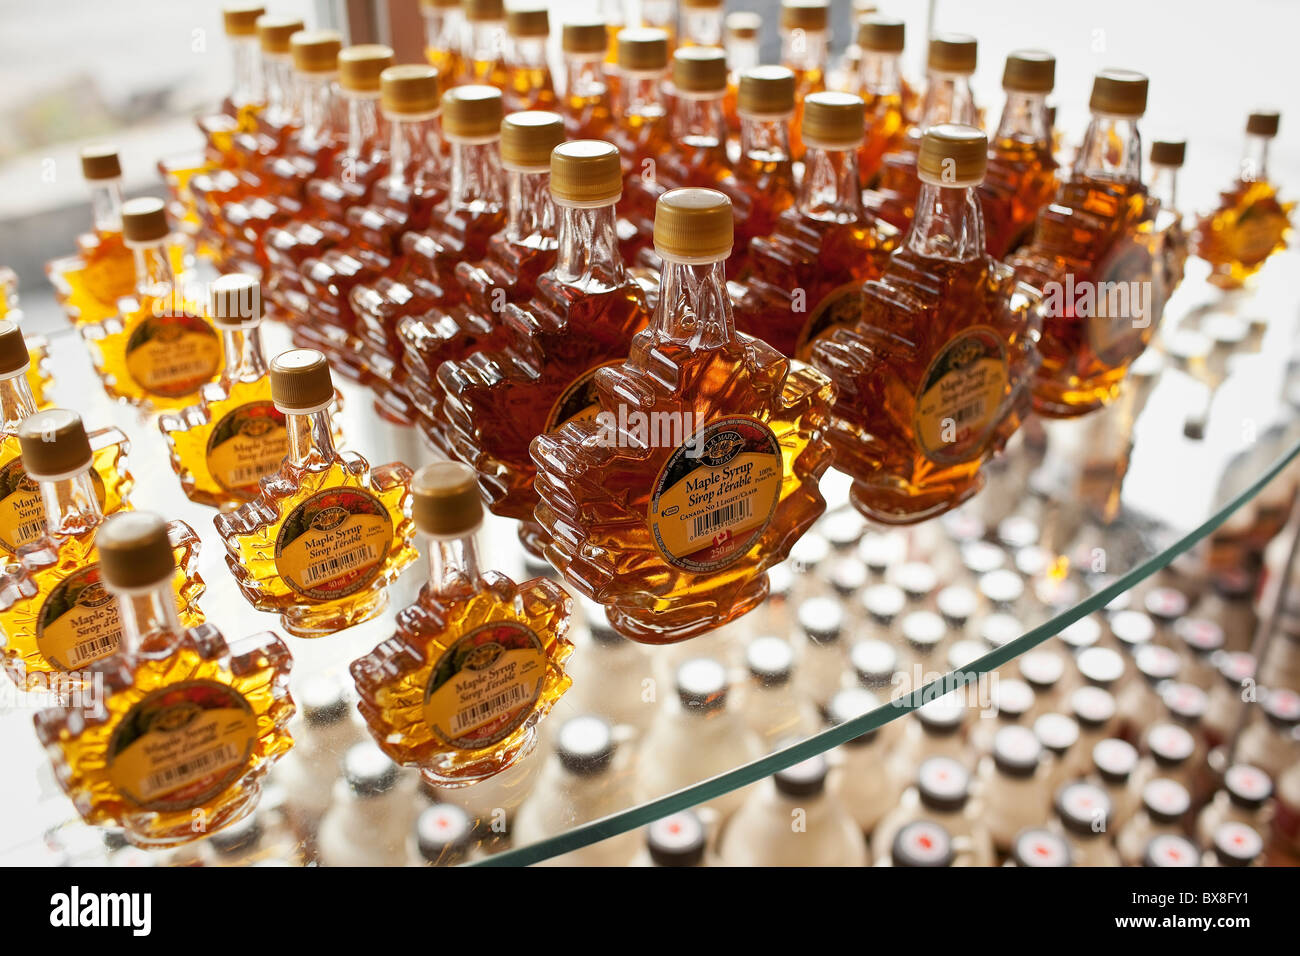 Maple Syrup in glass bottles. - Stock Image